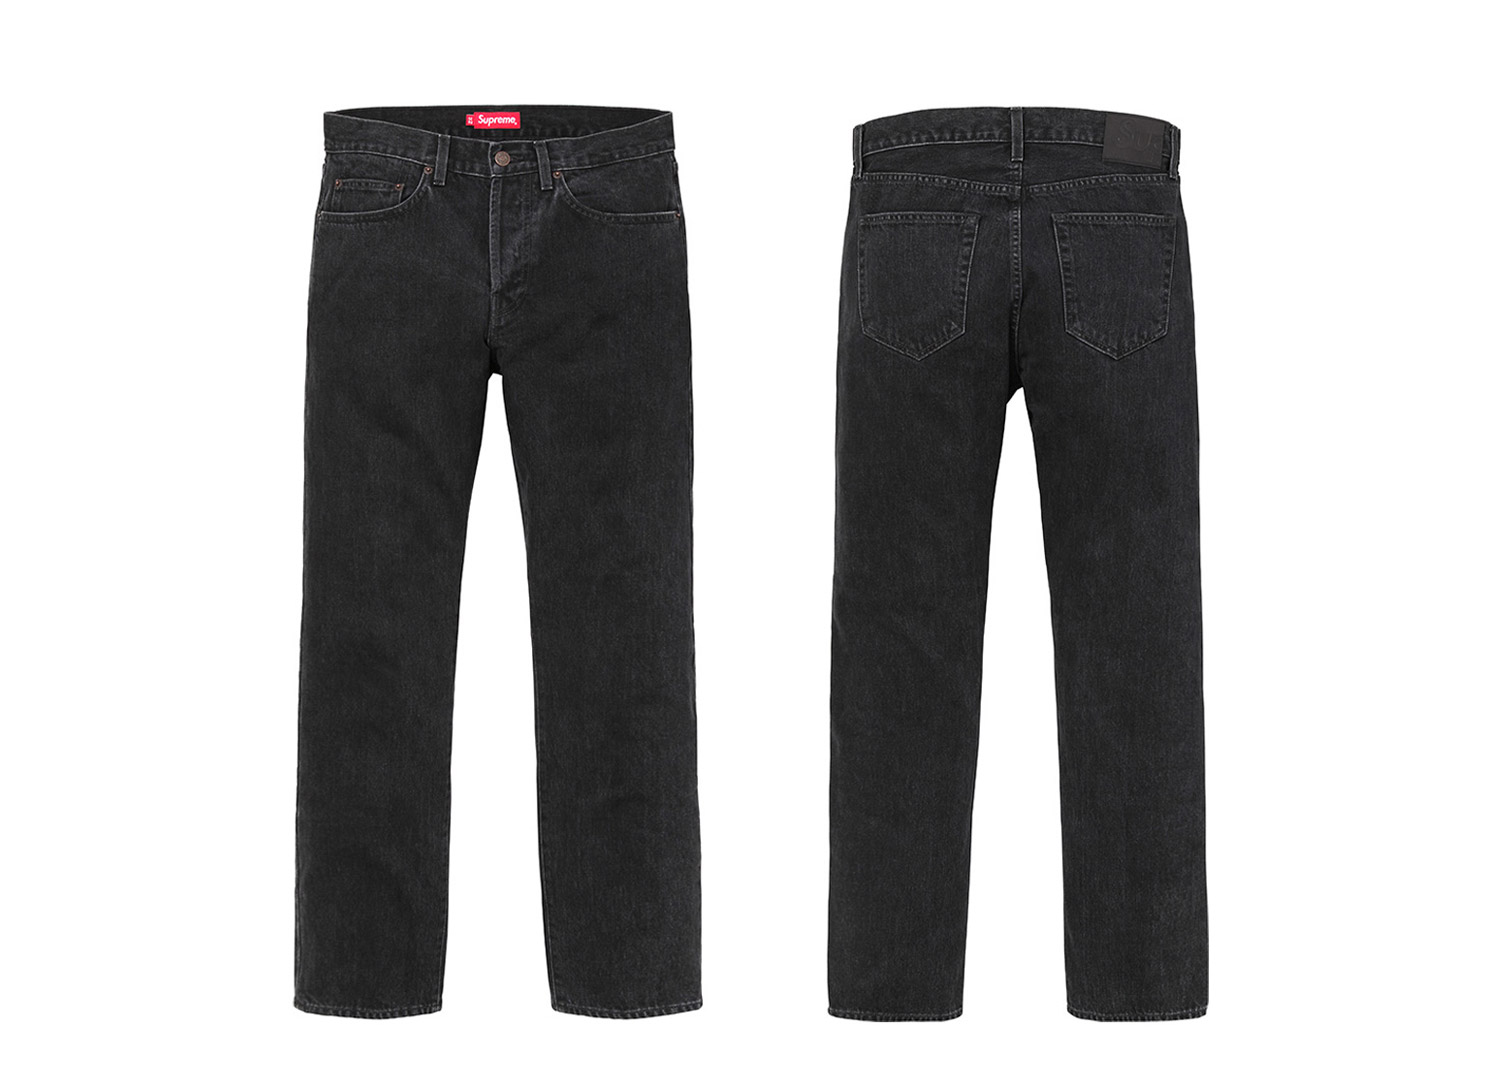 Stone Washed Black Slim Jean